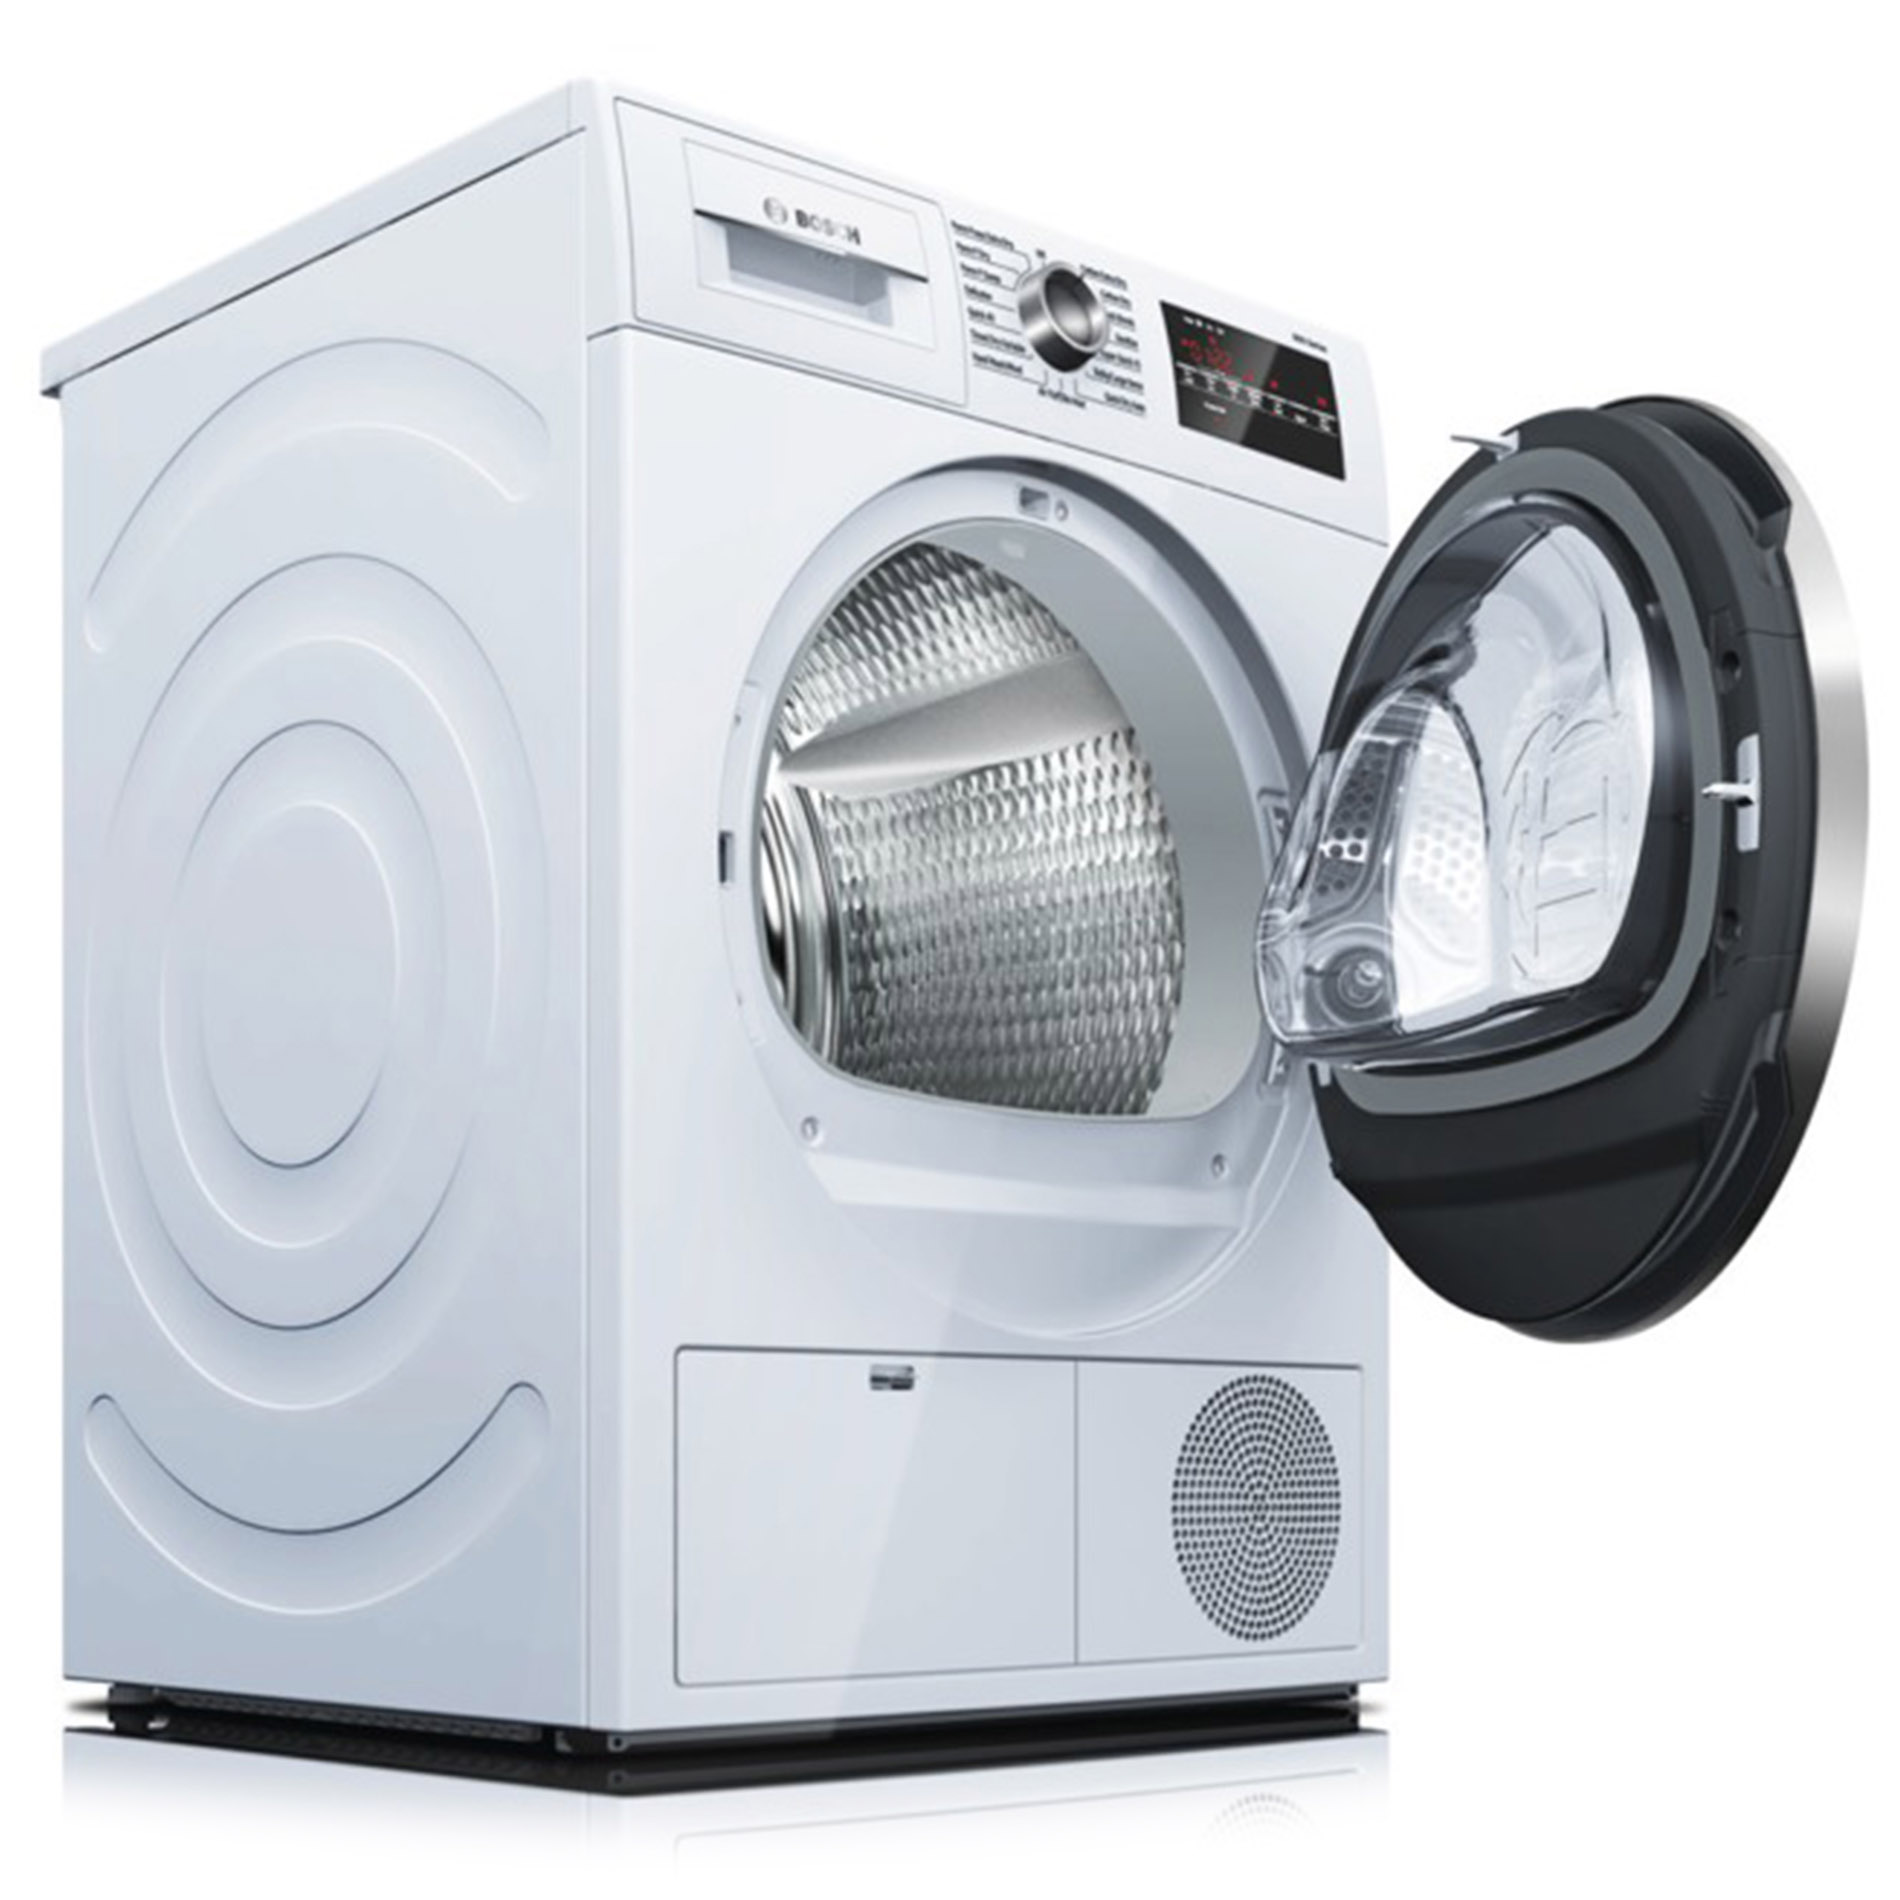 Bosch WTG86402UC 800 Series 4.0 cu. ft. Compact Condensation Dryer - White/Chrome